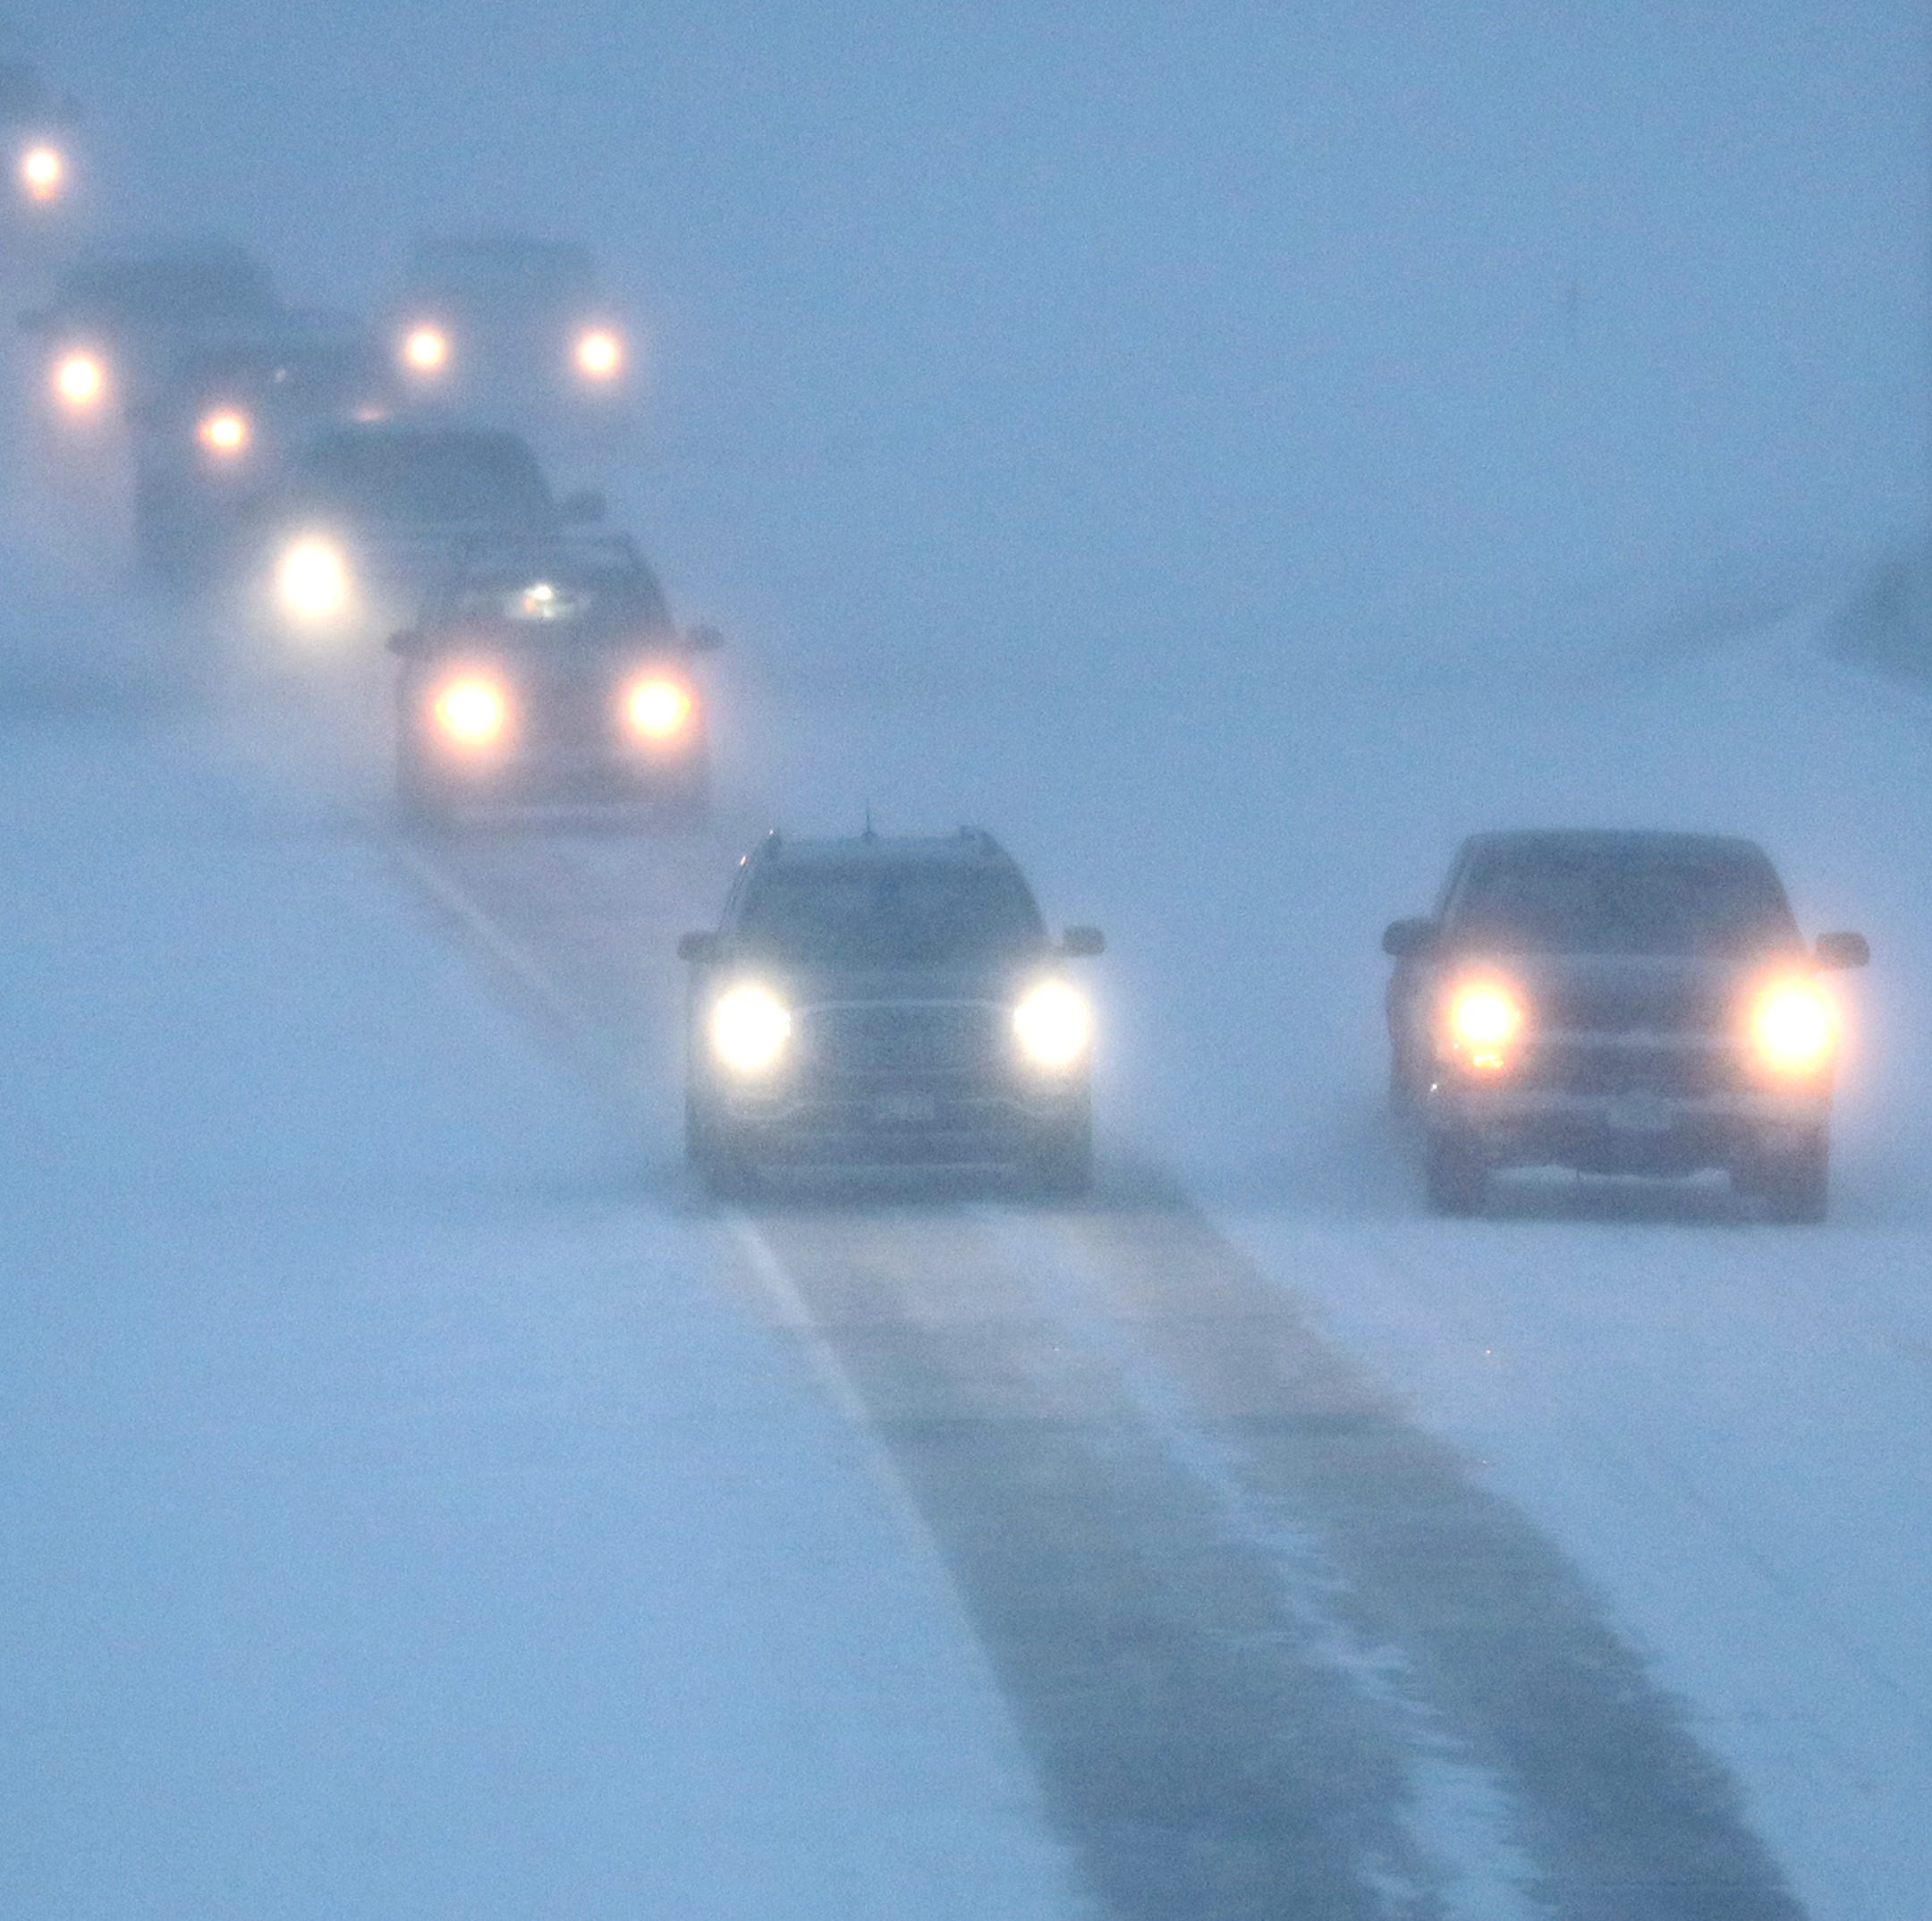 More snow expected Tuesday as slick roads, frigid temperatures continue